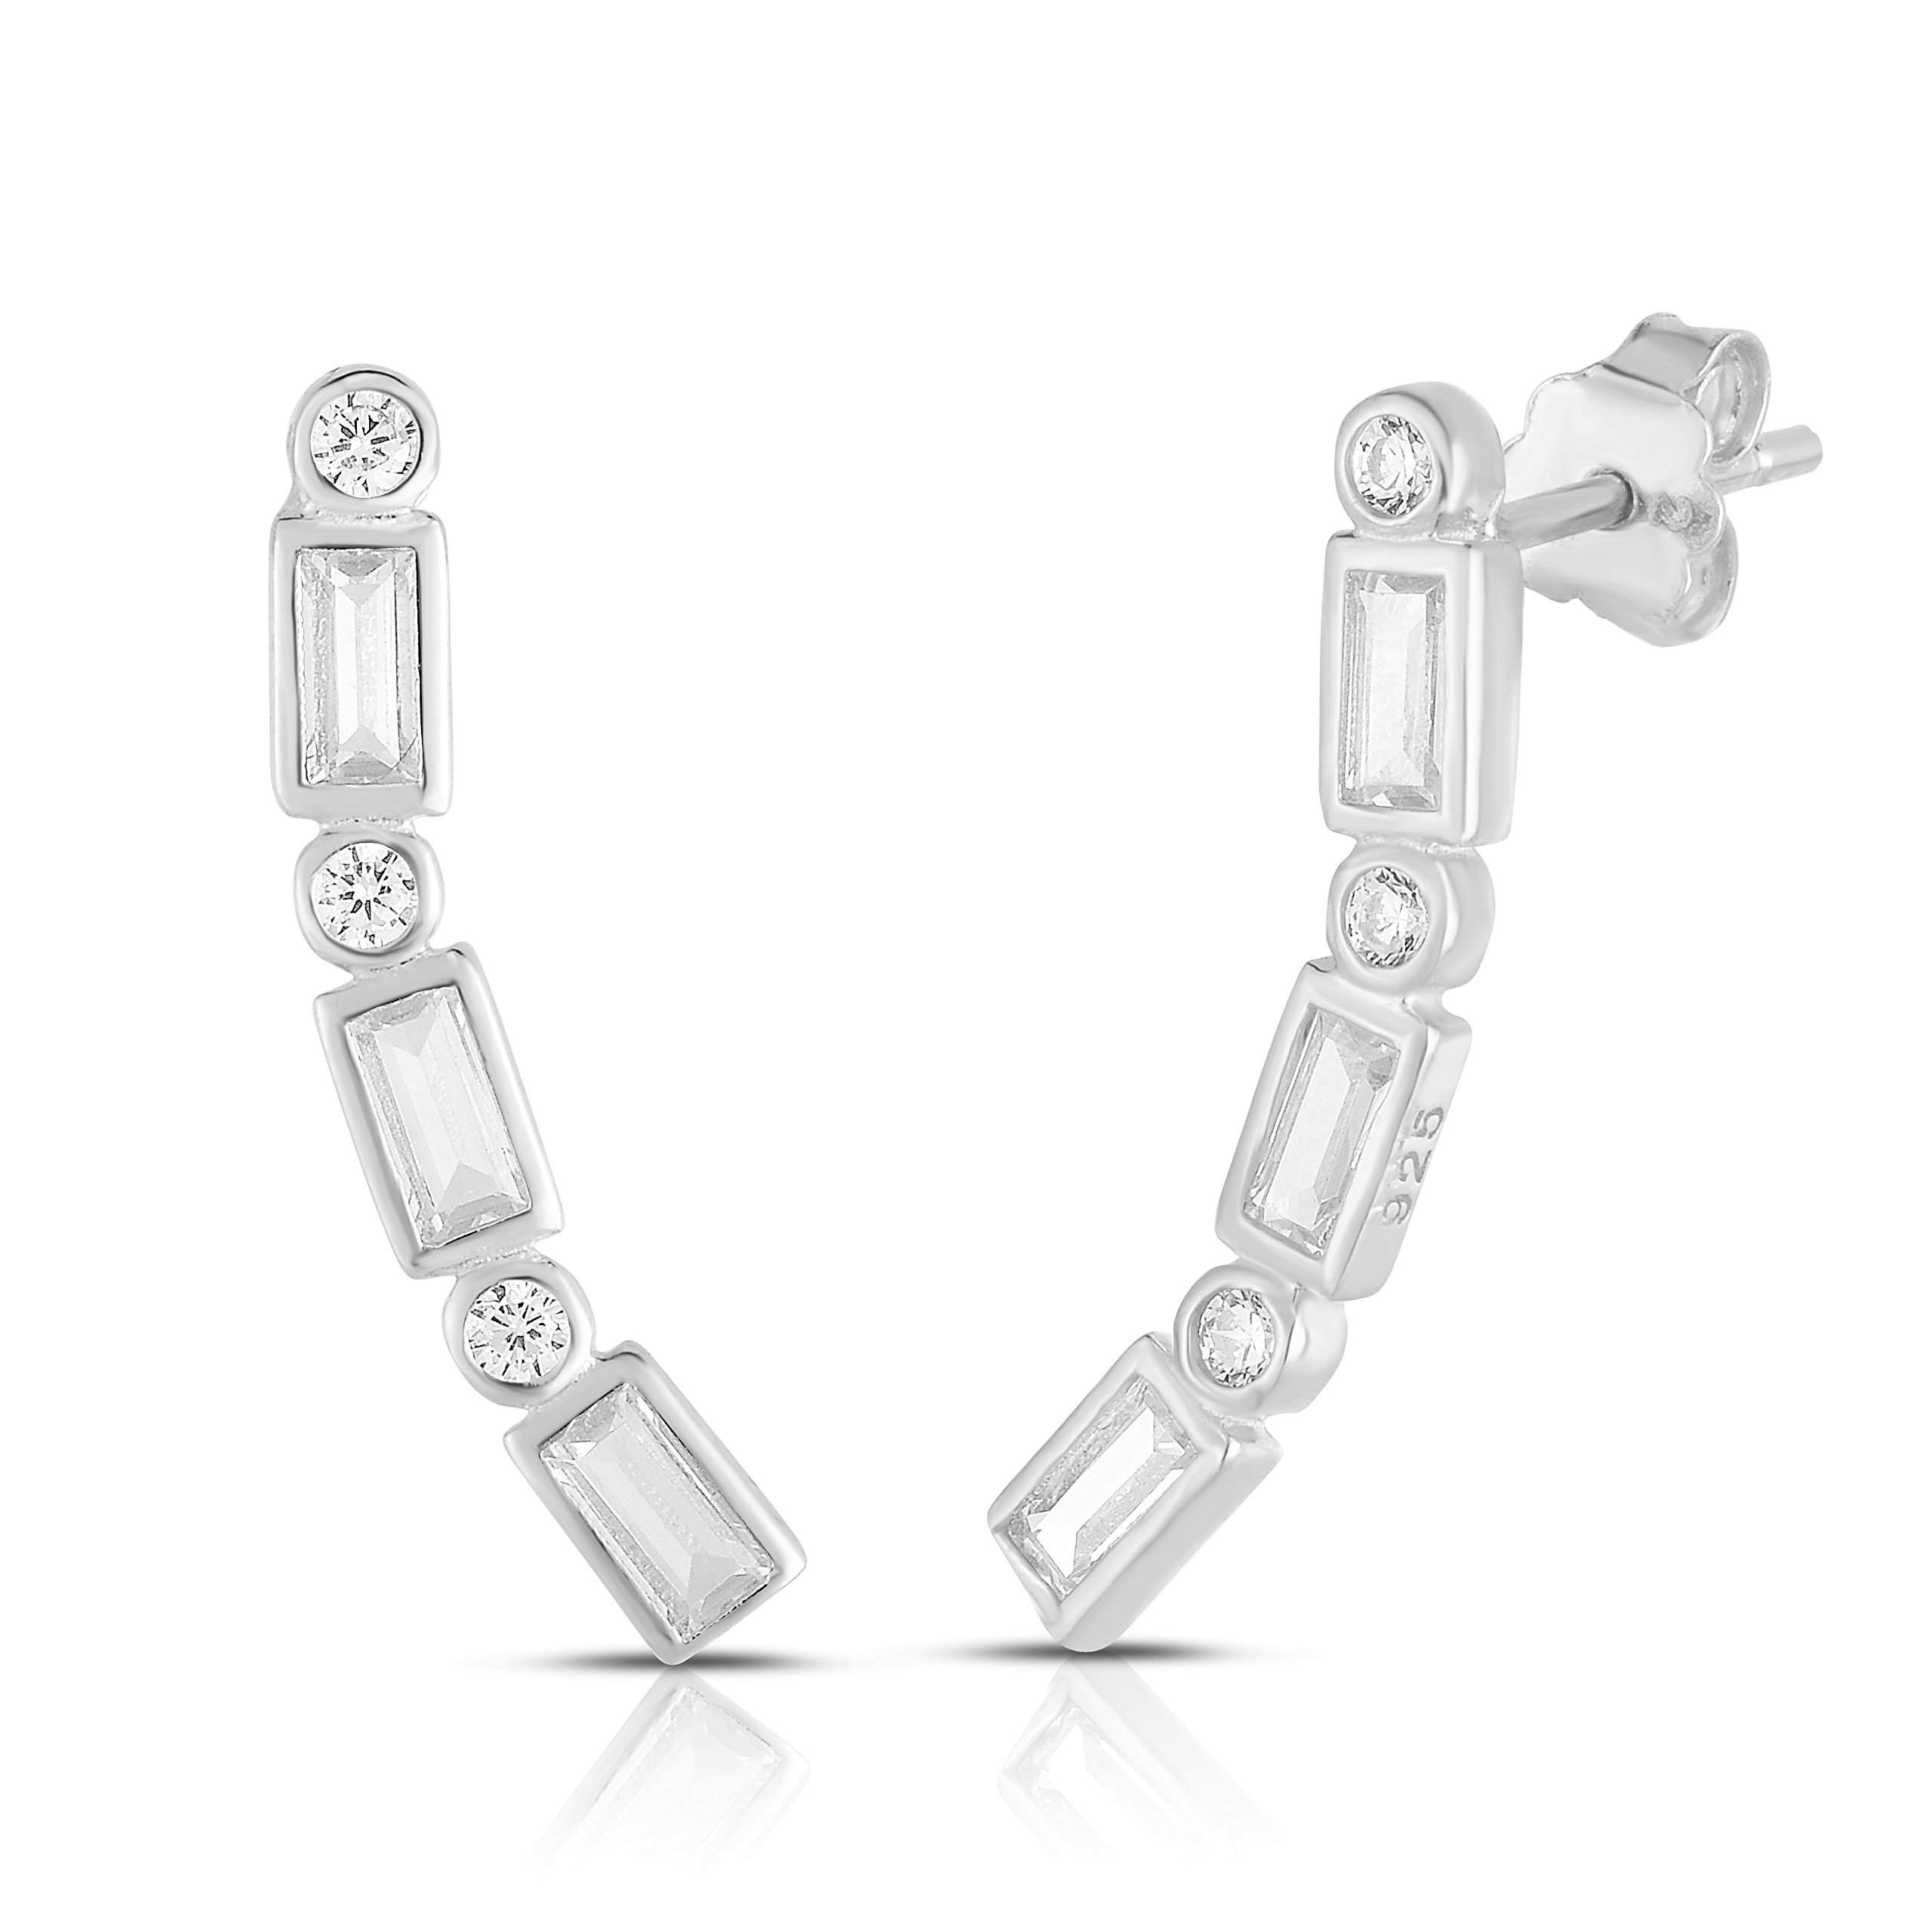 Rhodium Plated Sterling Silver Round and Baguette Cubic Zirconia Ear Crawler Stud Earrings